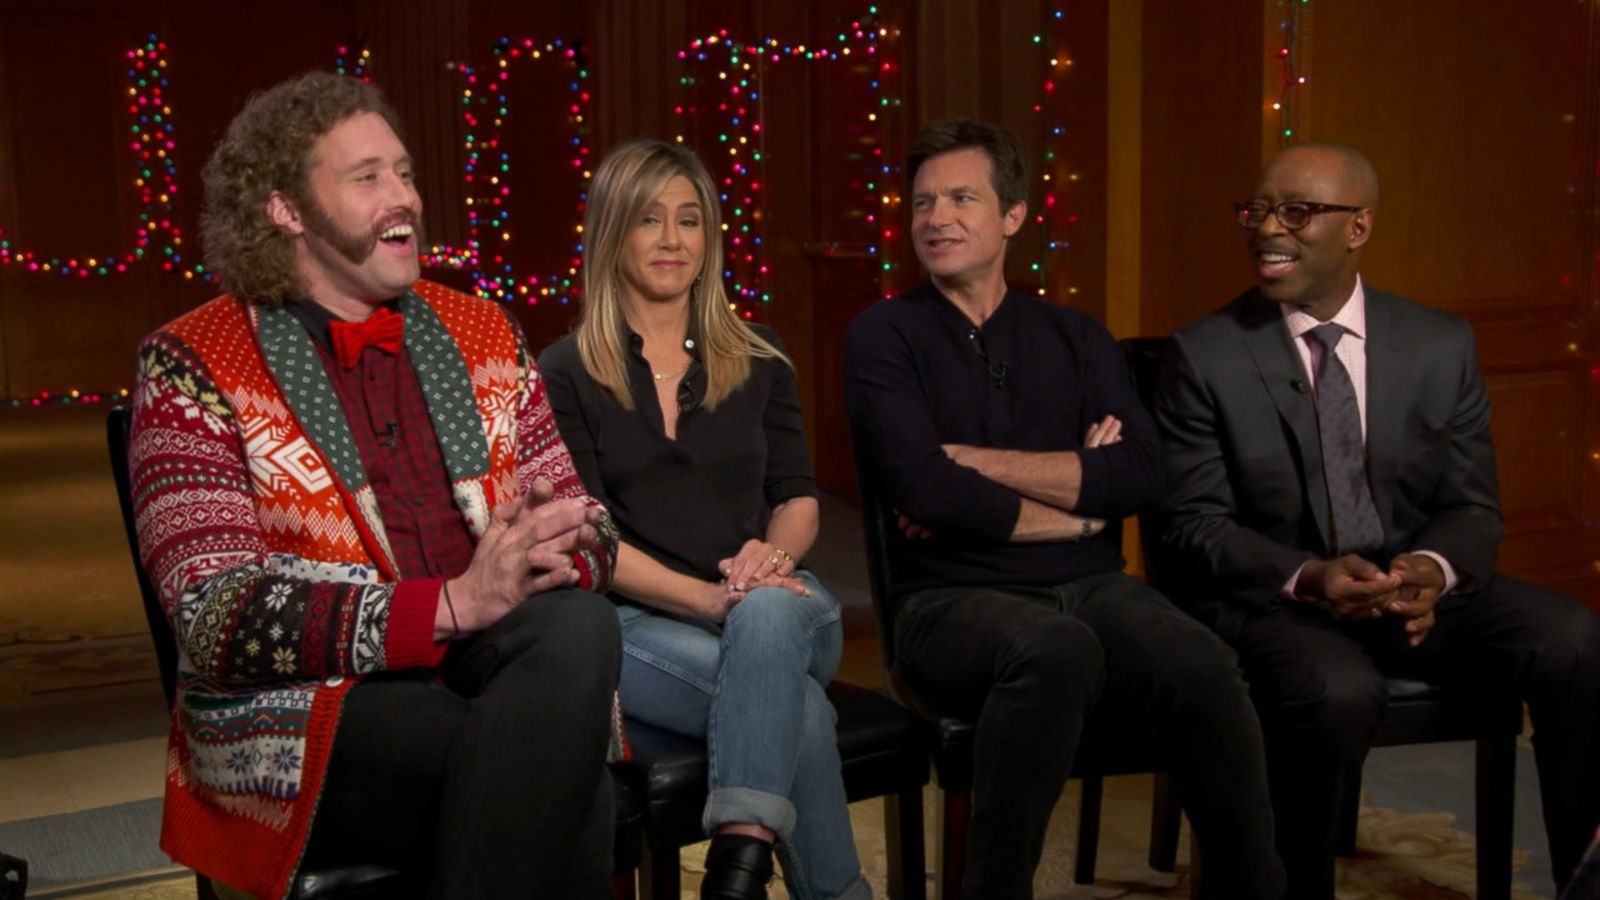 VIDEO: Jennifer Aniston, Jason Bateman, and More Discuss 'Office Christmas Party'